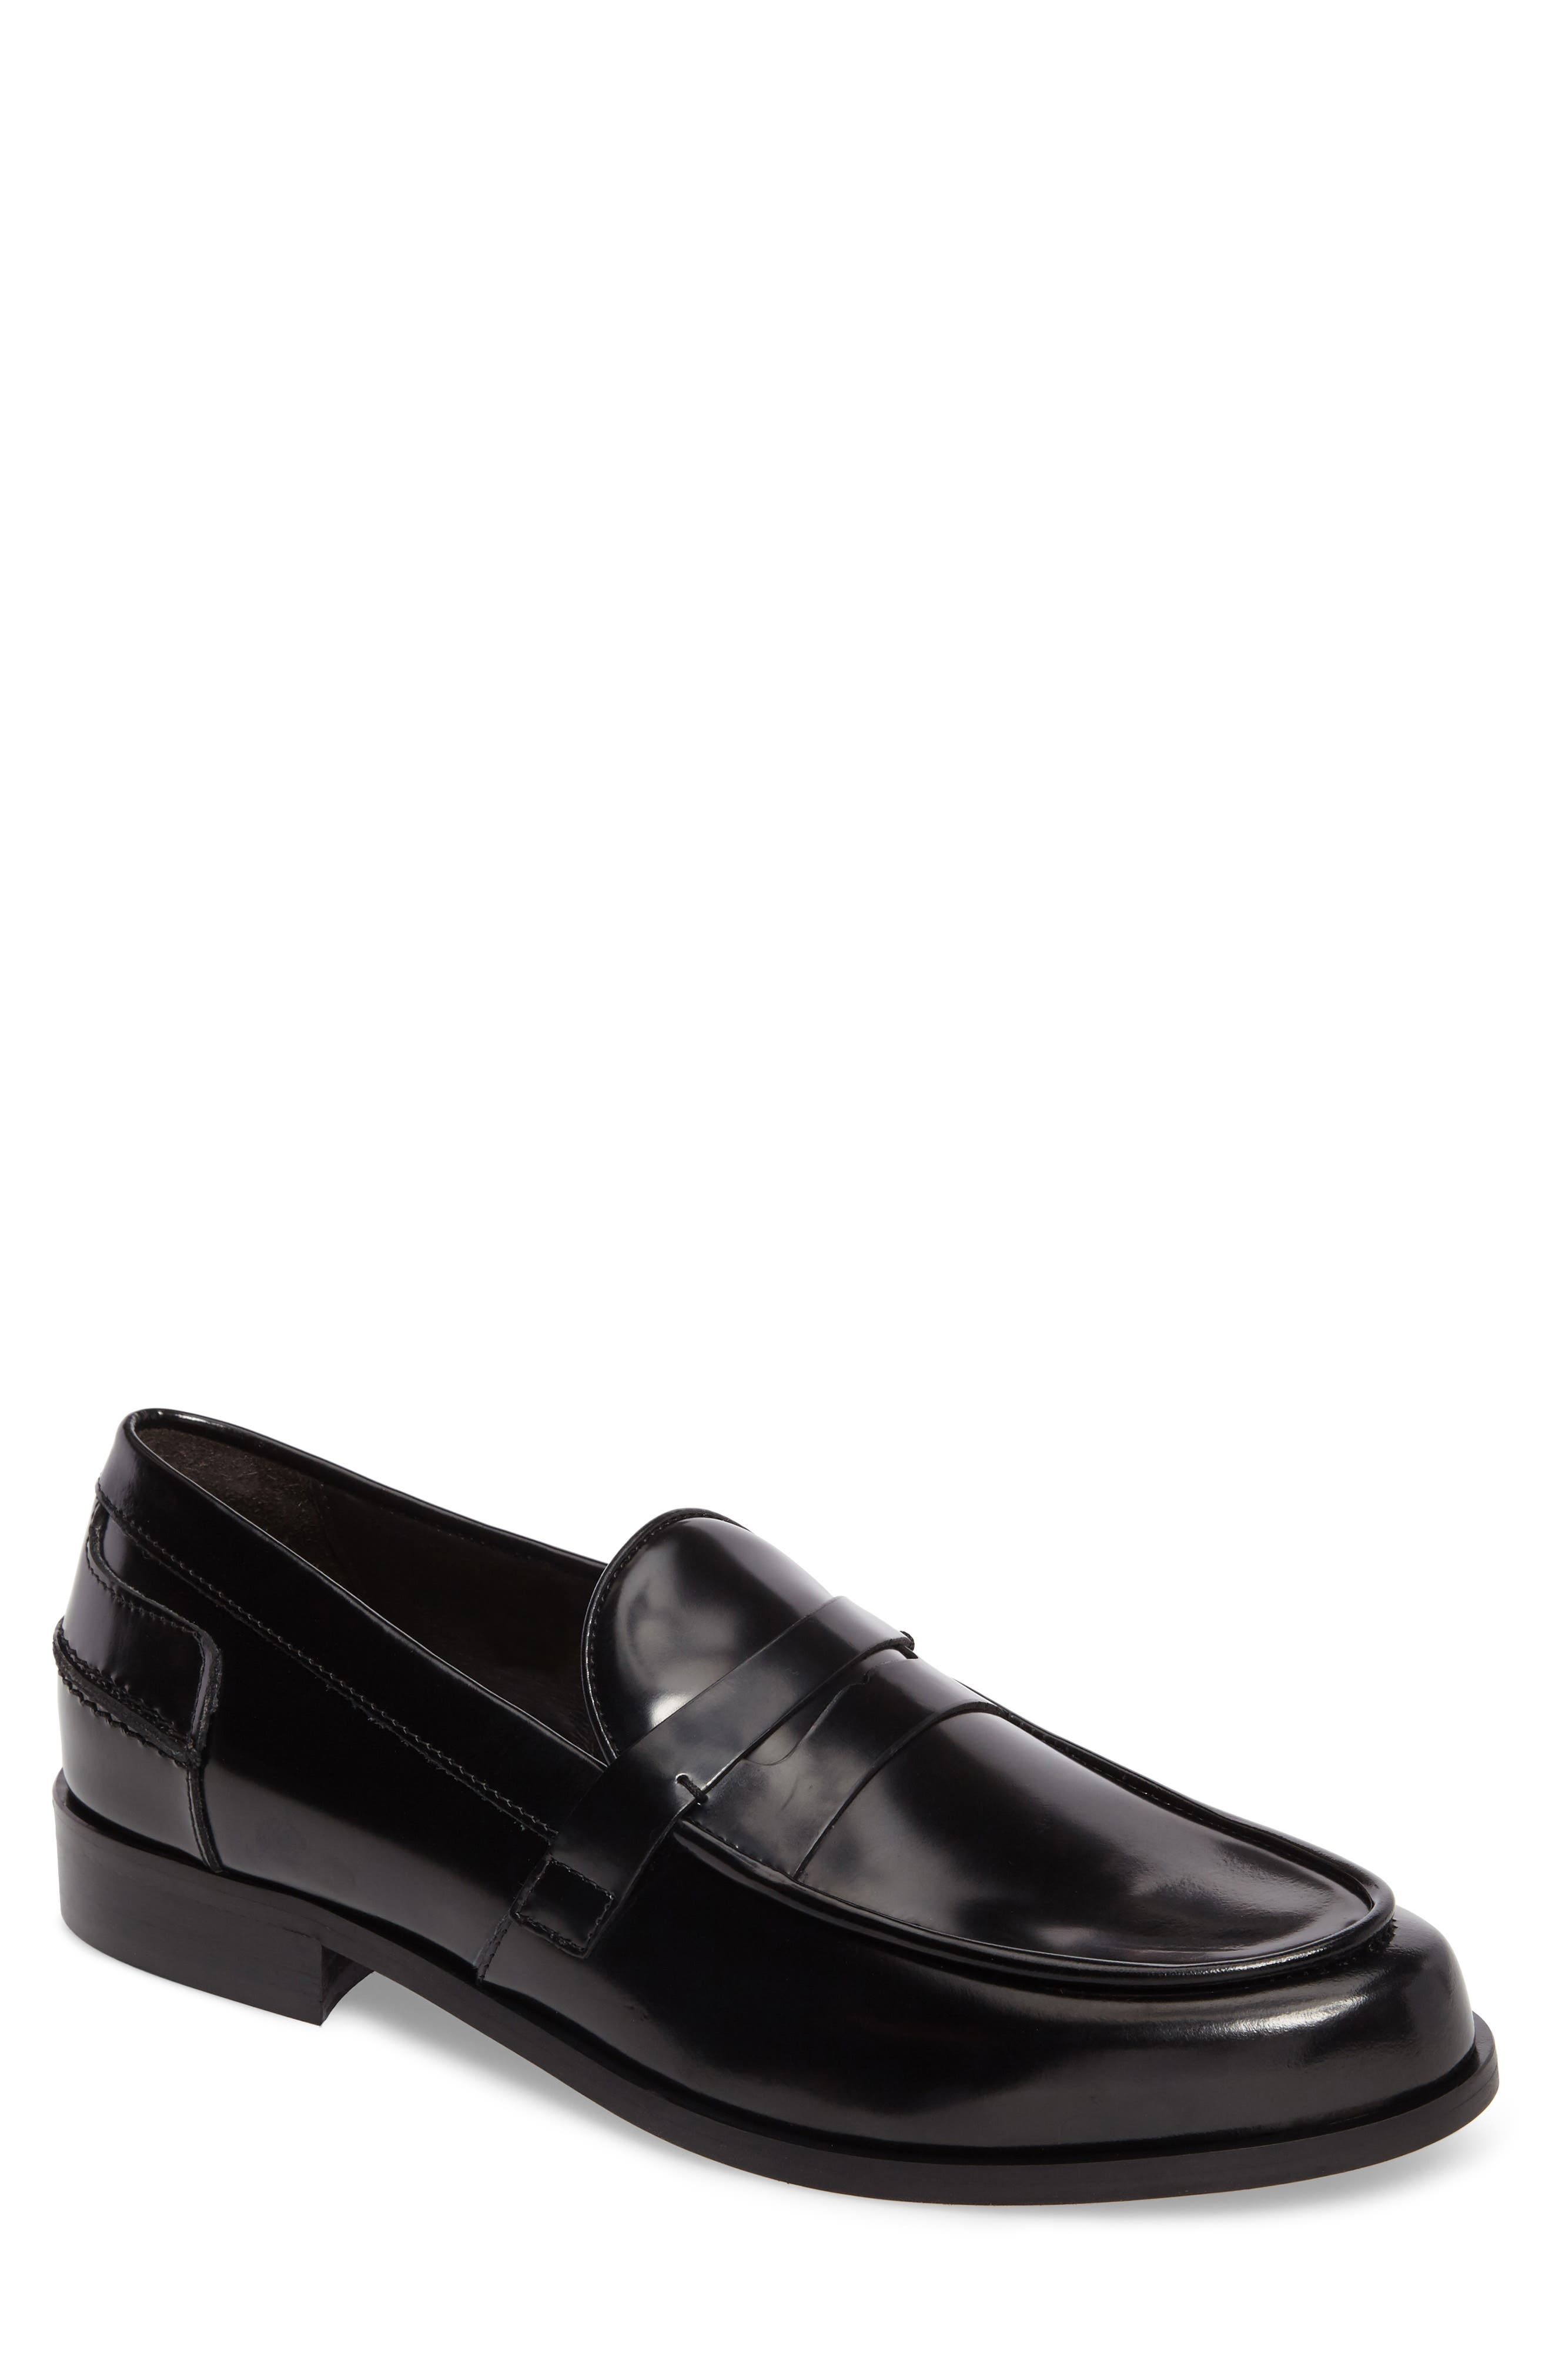 Donald J Pliner Sawyer Penny Loafer,                         Main,                         color,